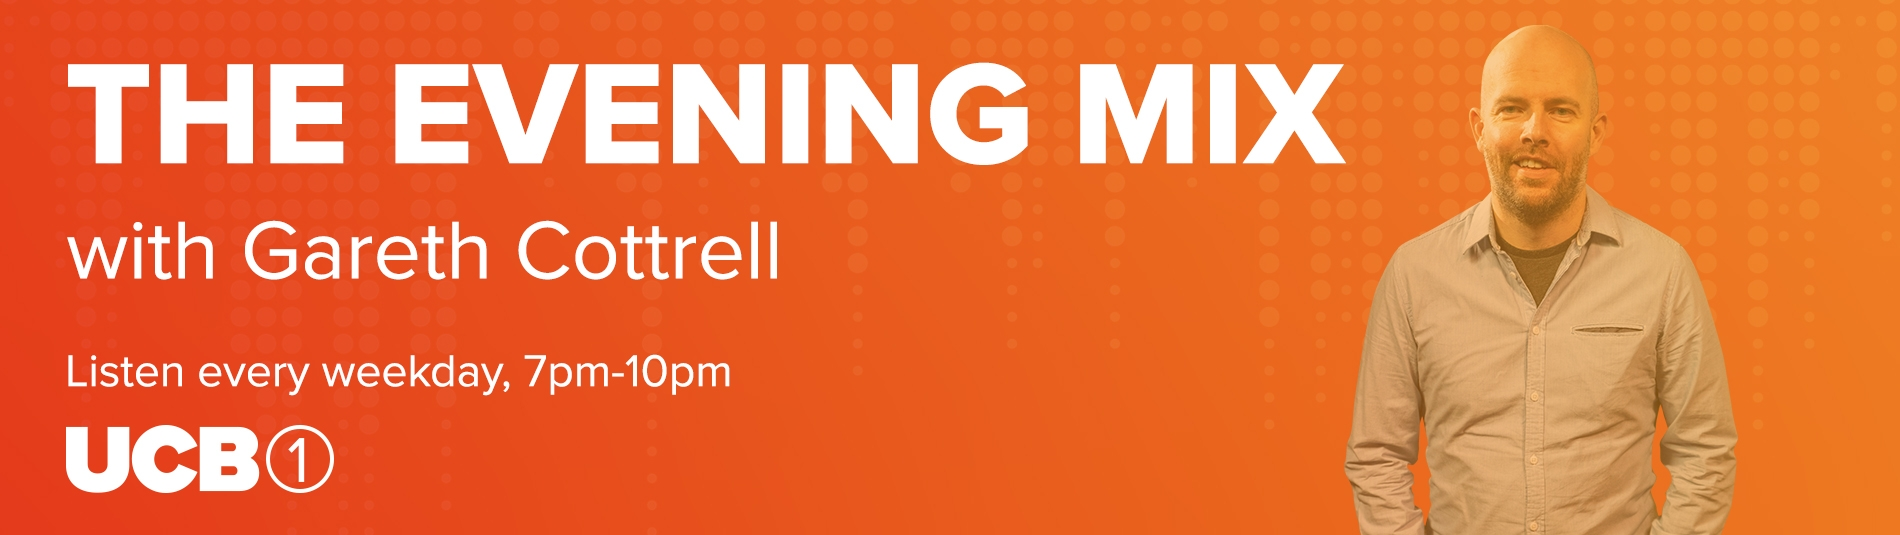 The Evening Mix with Gareth Cottrell, weekdays 7pm-10pm